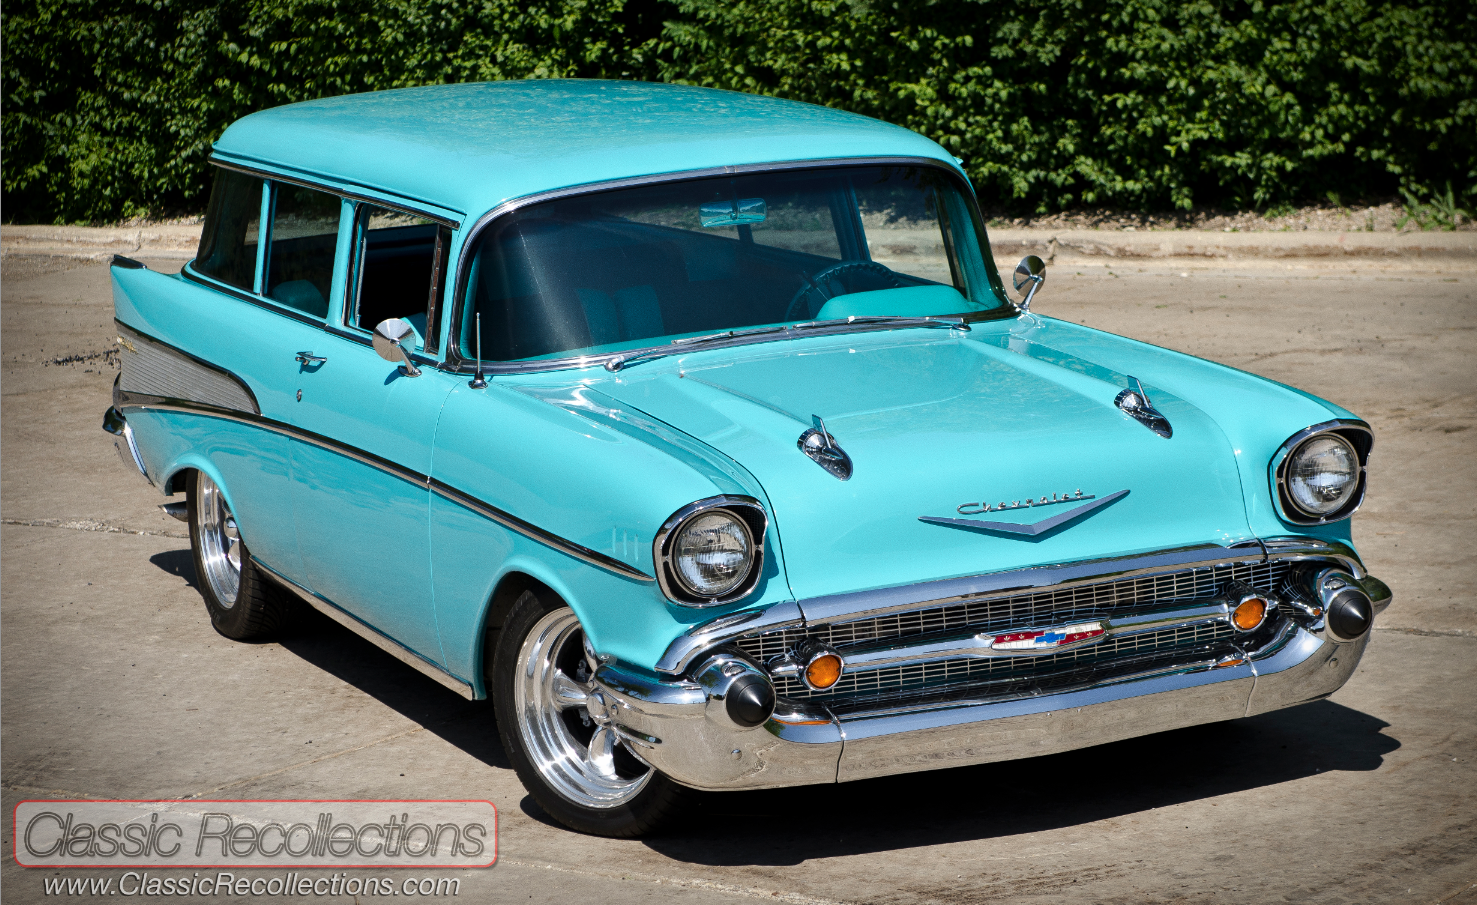 All Chevy 1957 chevy wagon for sale : FEATURE: 1957 Chevrolet 210 Wagon – Classic Recollections